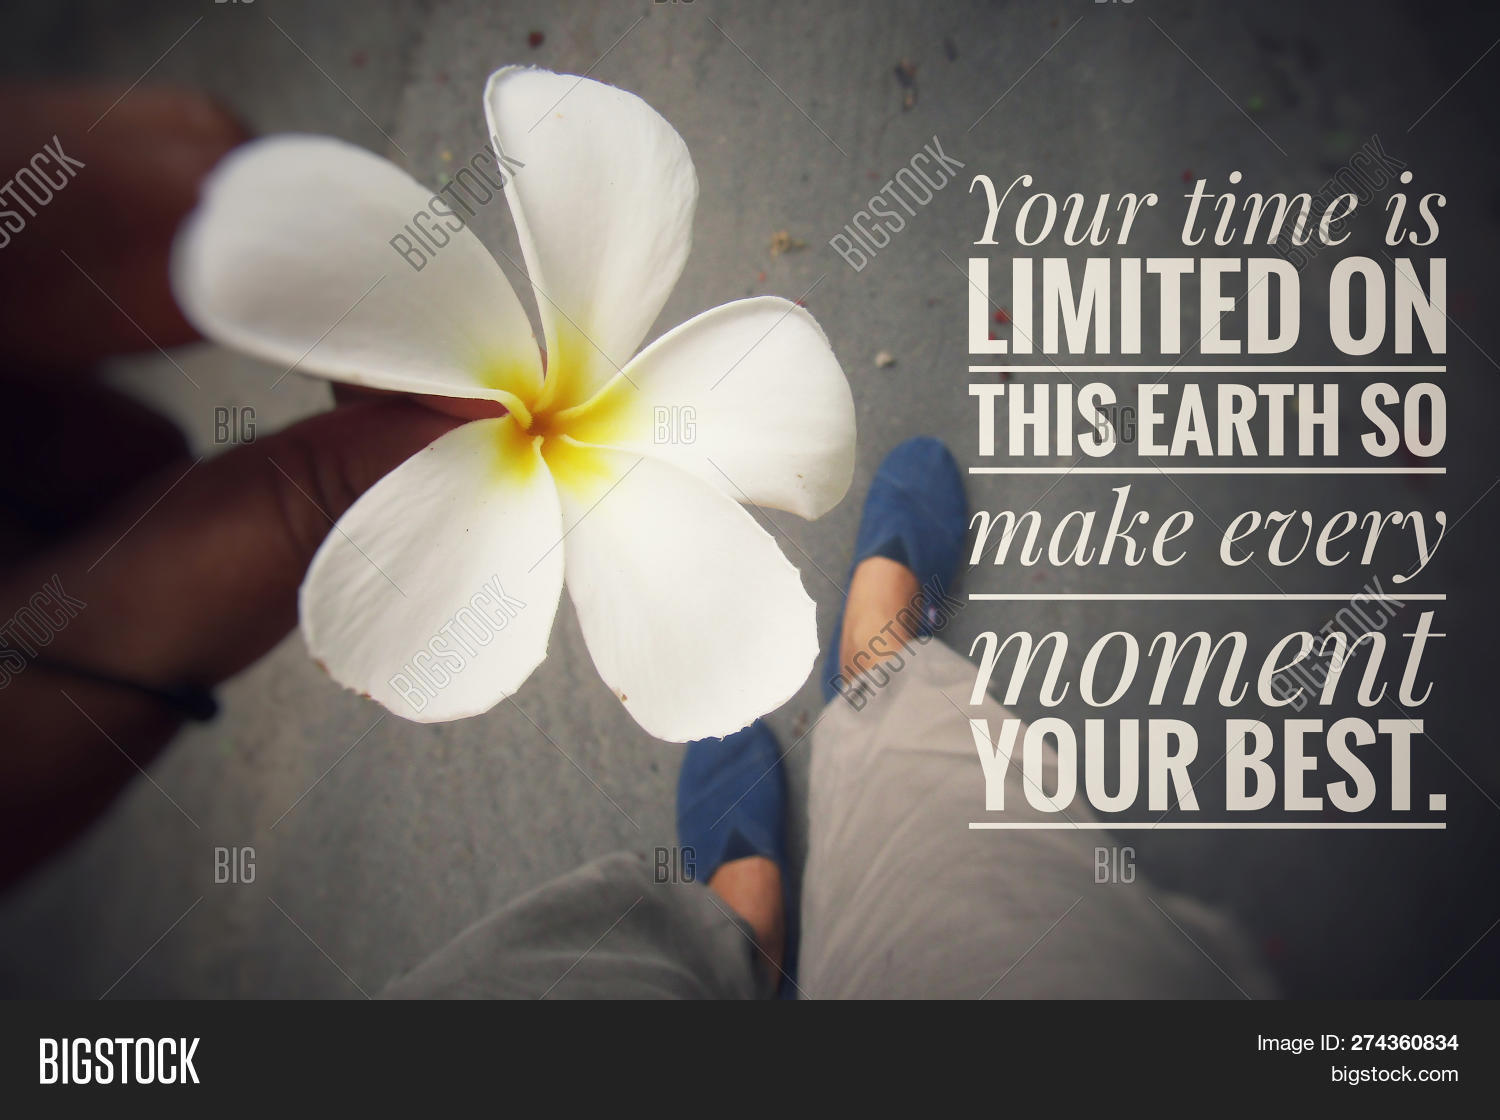 inspirational quote image photo trial bigstock